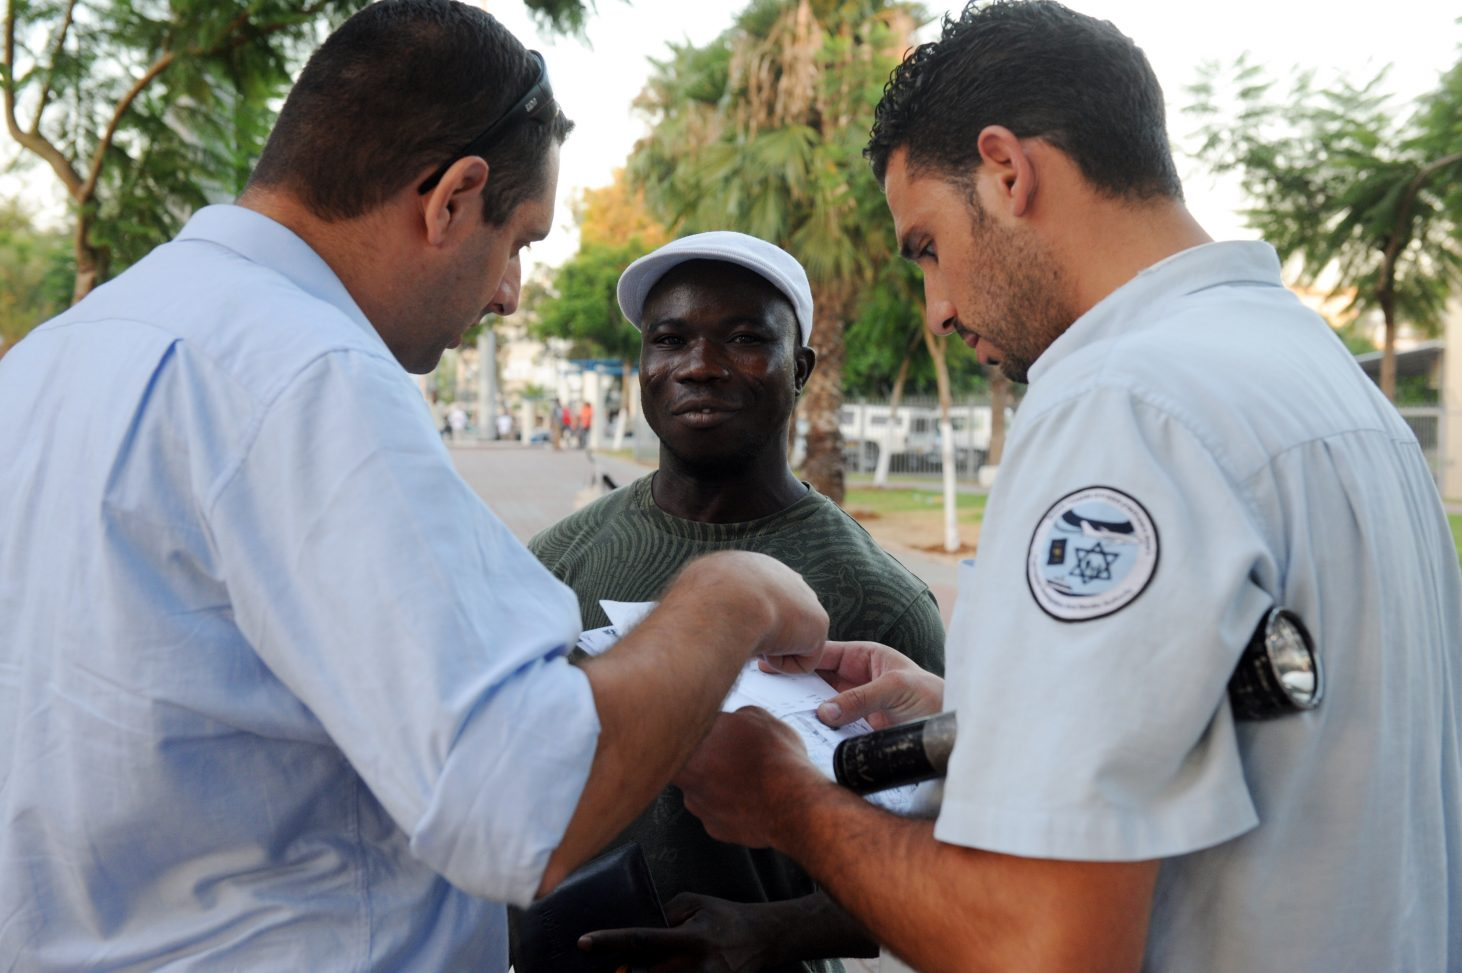 An African talking with police officers in Tel Aviv.